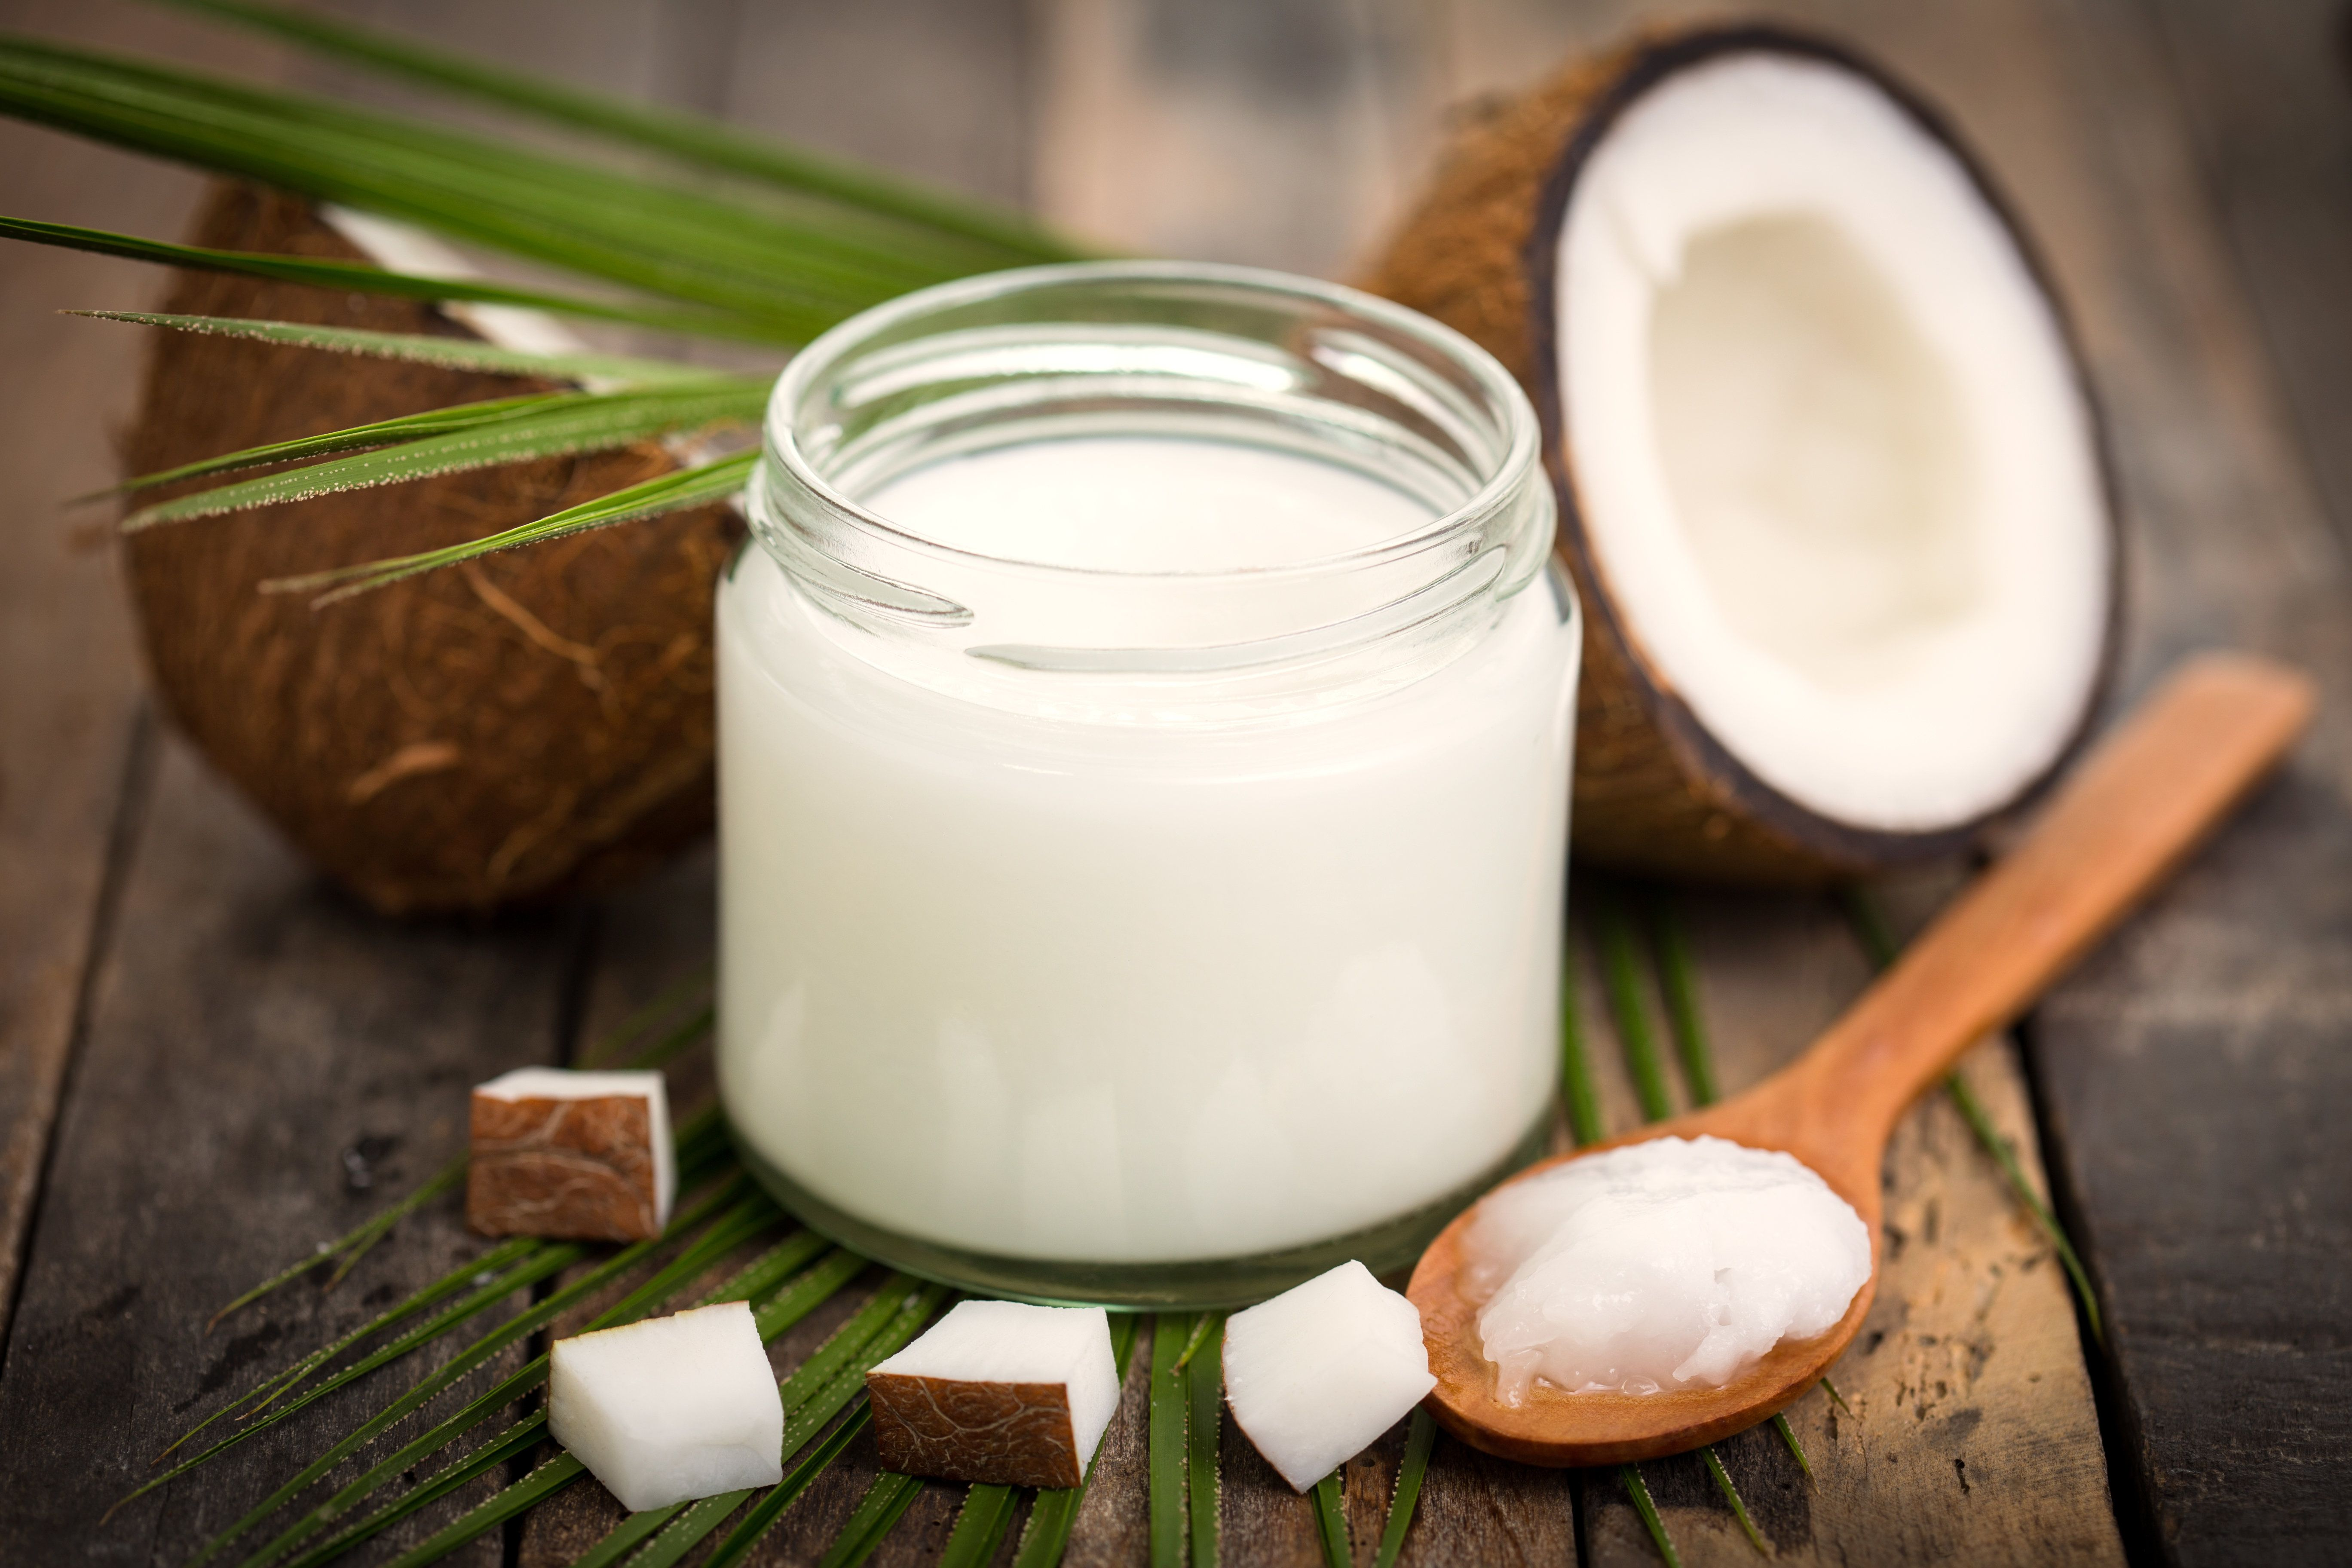 Coconut Oil Is 'Pure Poison', According To A Harvard